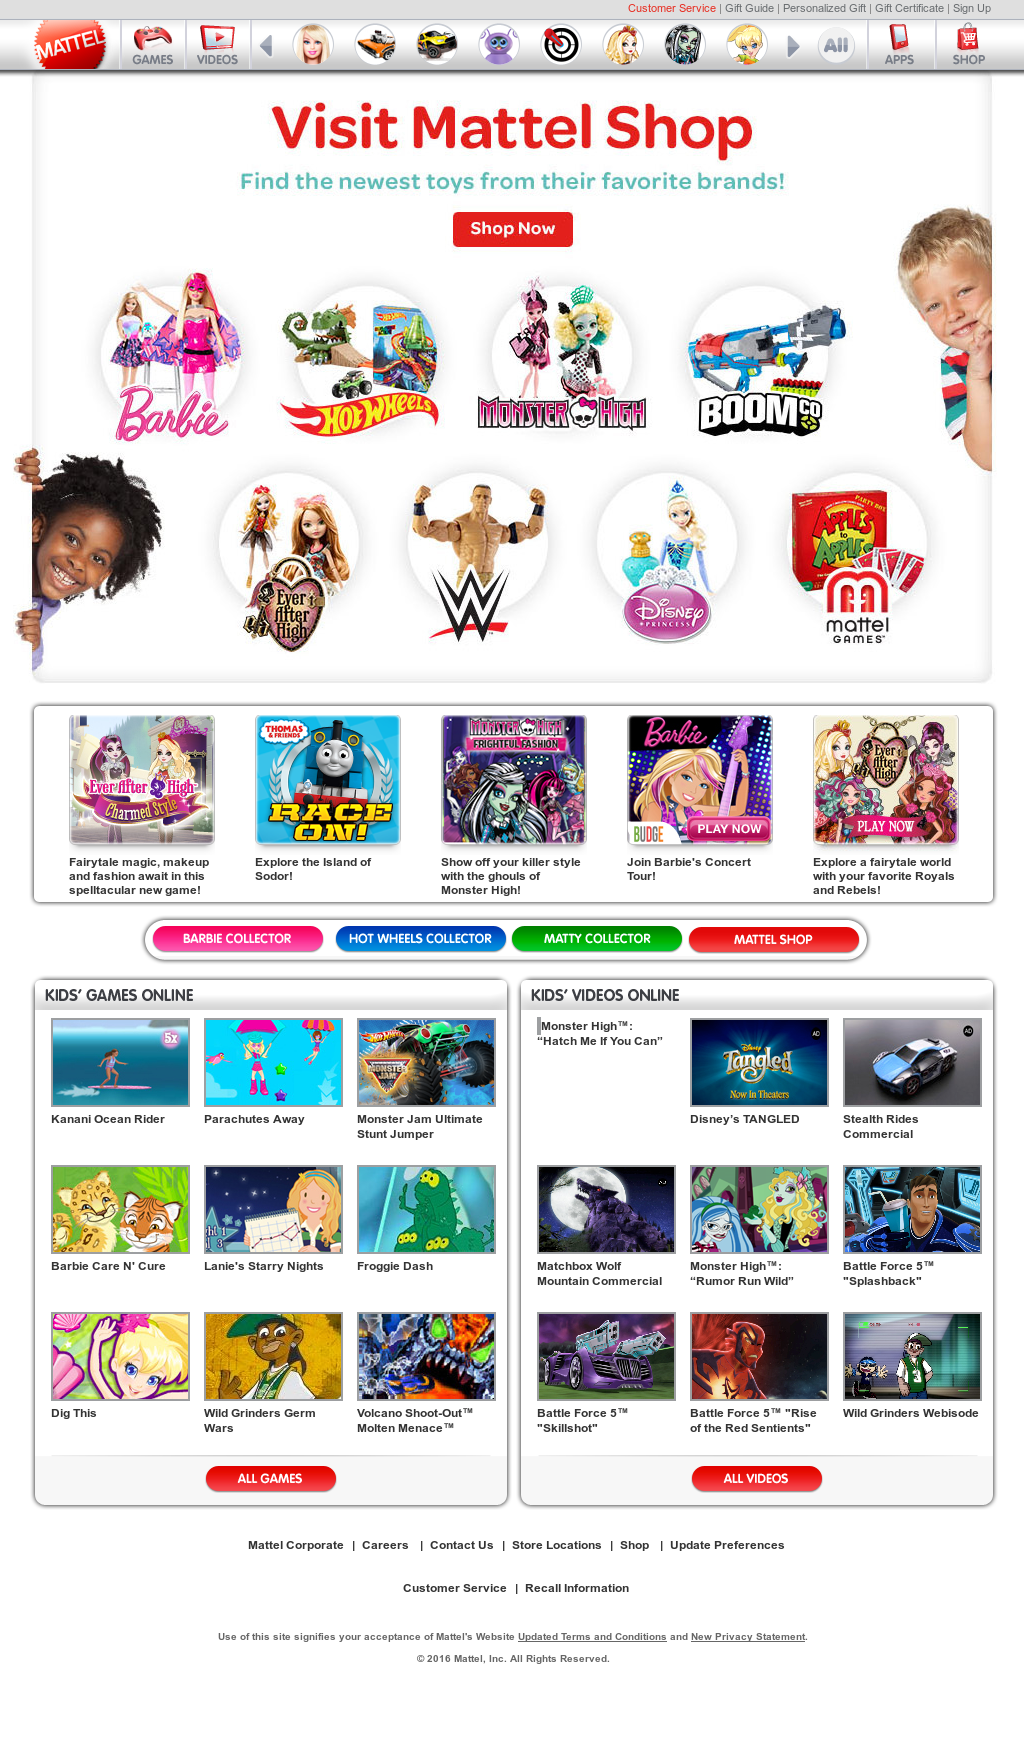 a company overview and the issues of mattel inc Annual report pursuant to section 13 or 15(d) of the  mattel  has experienced, and may in the future experience, issues with.